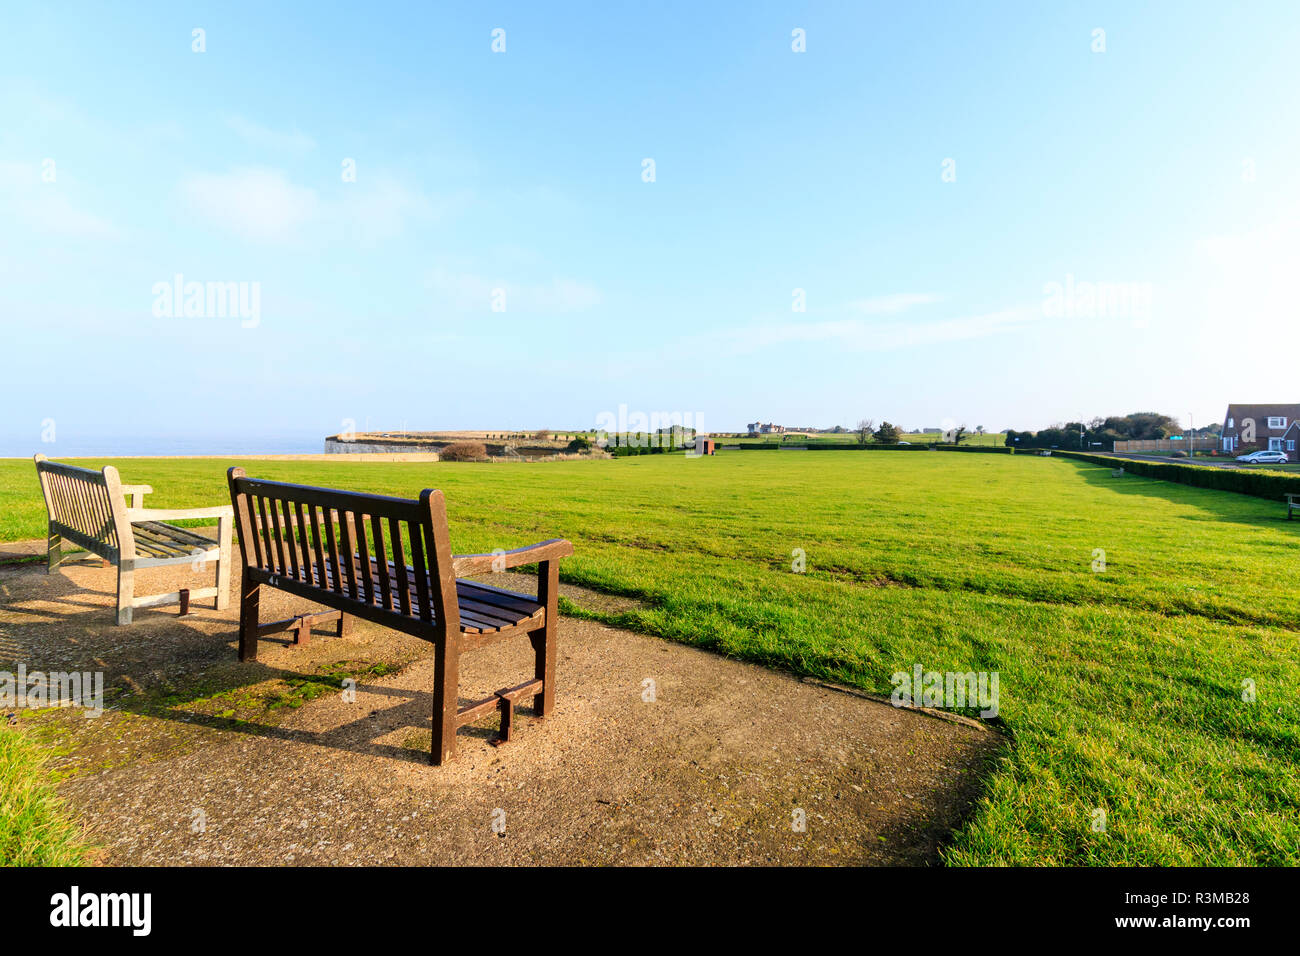 Epple Bay, Birchington, Kent. Two park benches on grass area with the coast road, bay, and golf course in the background. - Stock Image